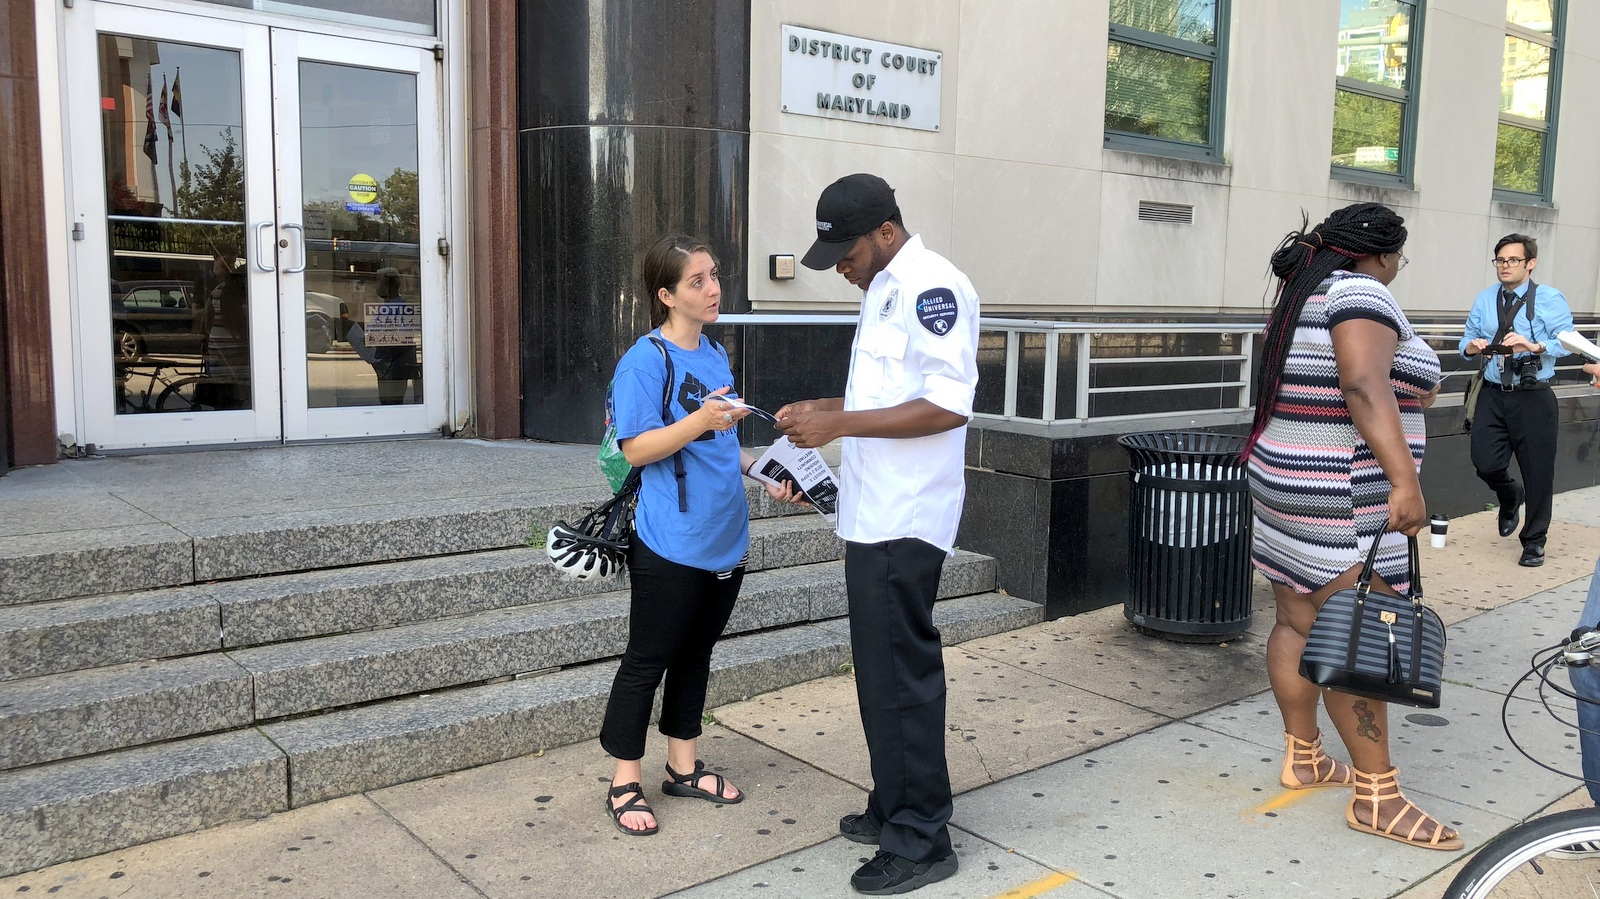 Rianna Eckel passing along information on Baltimore's new rules for rental housing. (Fern Shen)